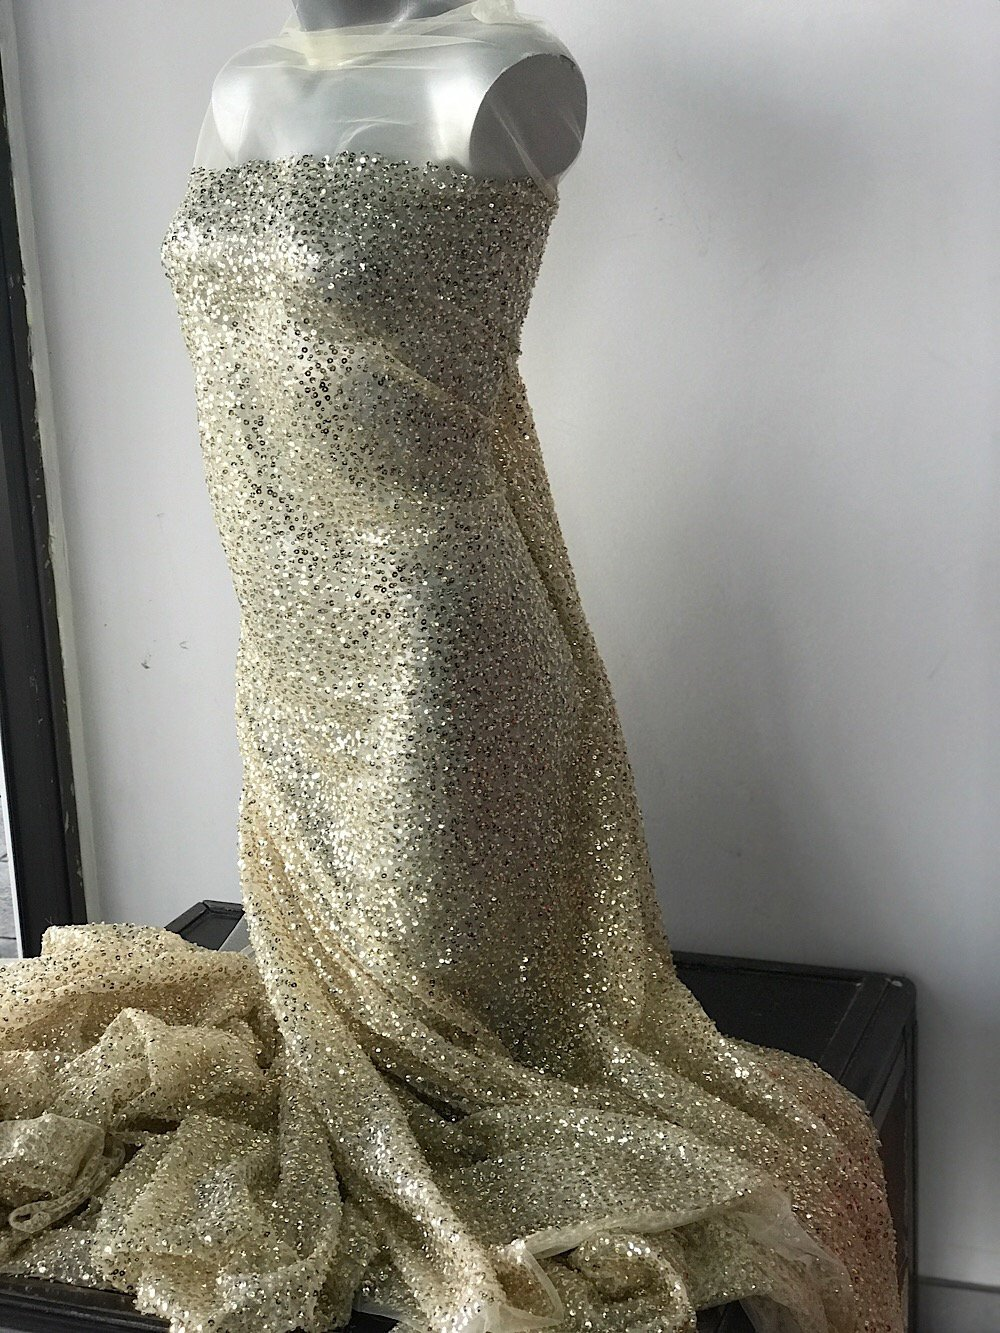 Gold sequins bridal lace fabric, shiny sequins paiettes on soft white tulle, wedding dress veil trail bustle